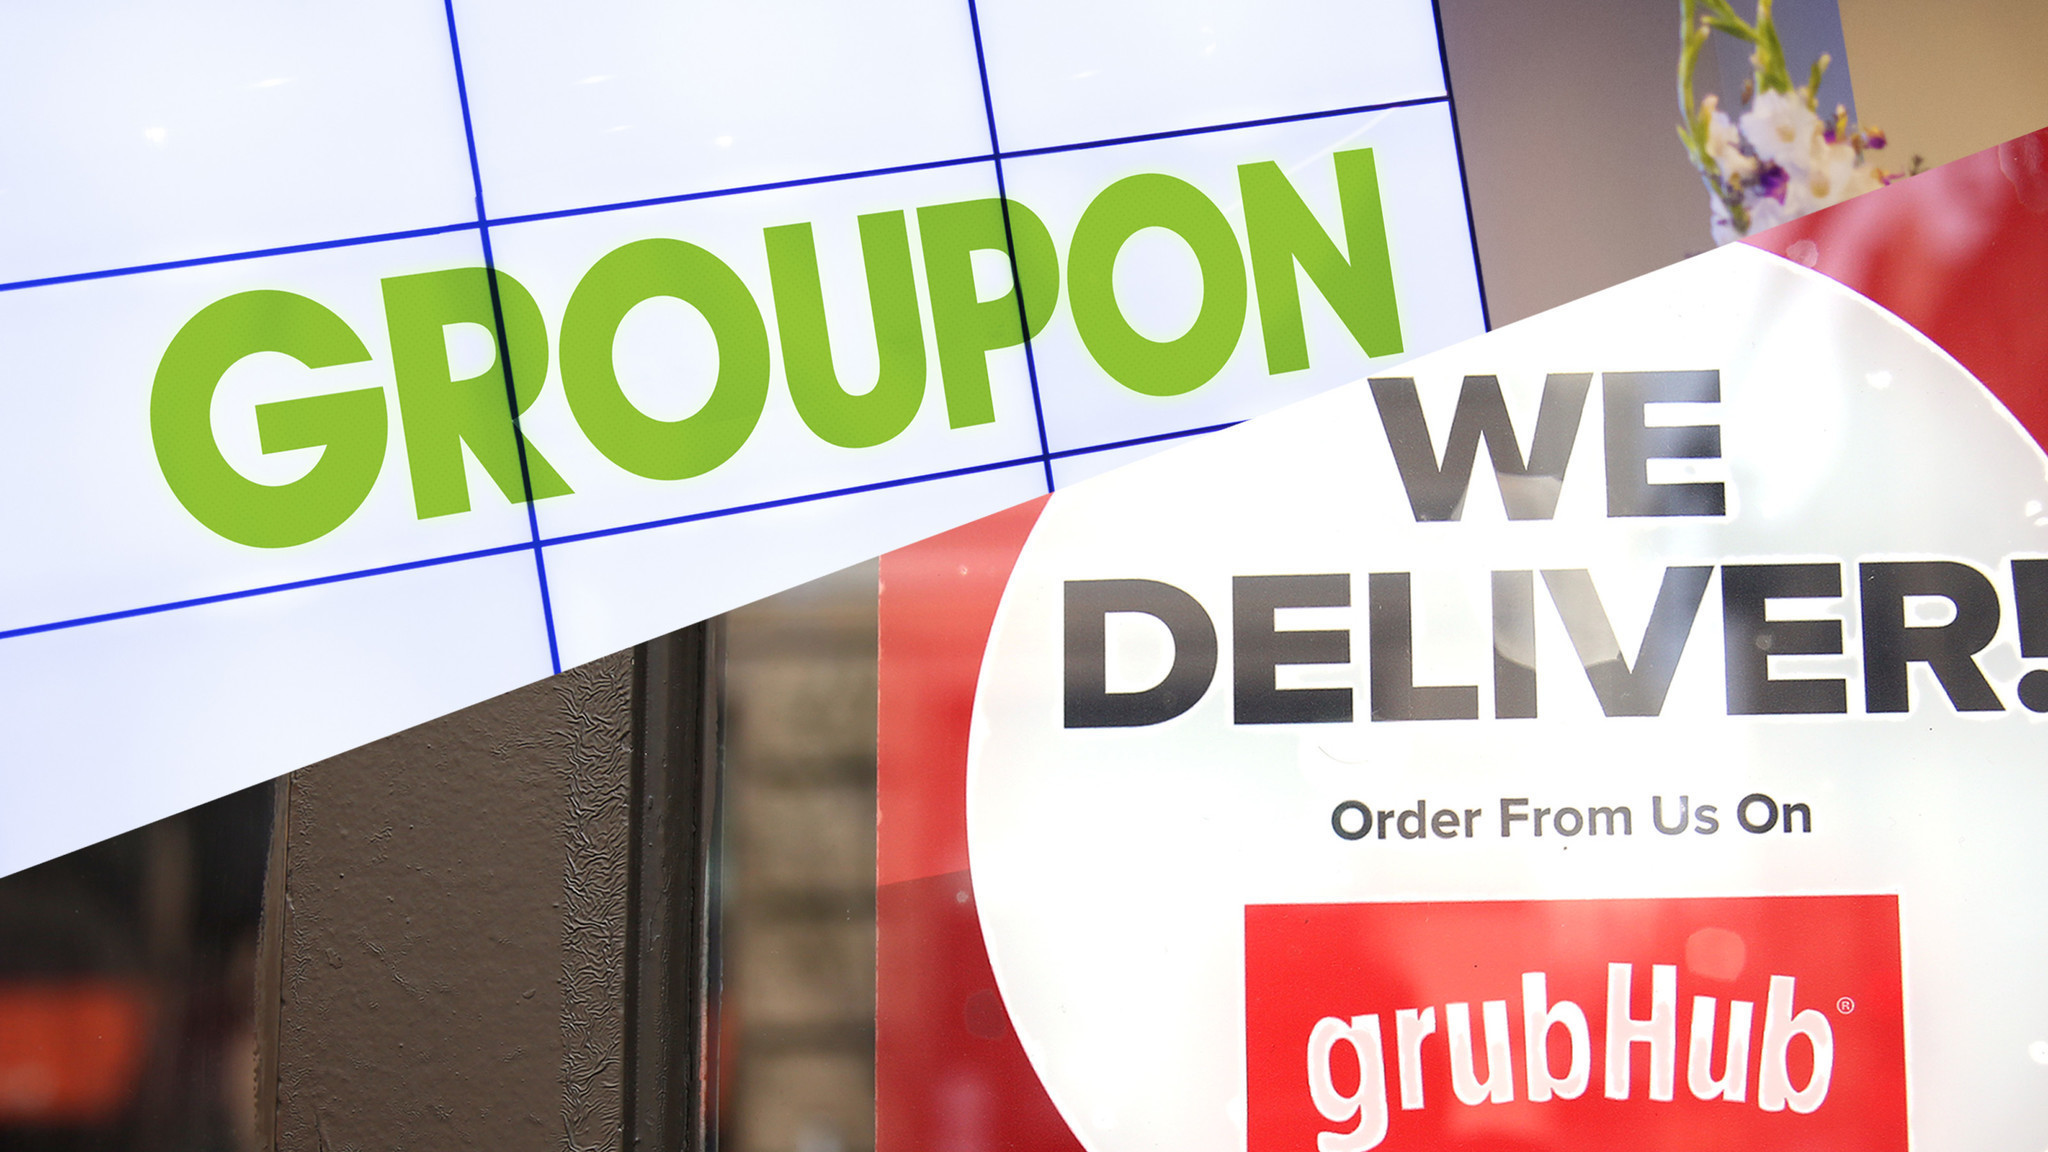 Grubhub Groupon Join Forces On Food Delivery Chicago Tribune